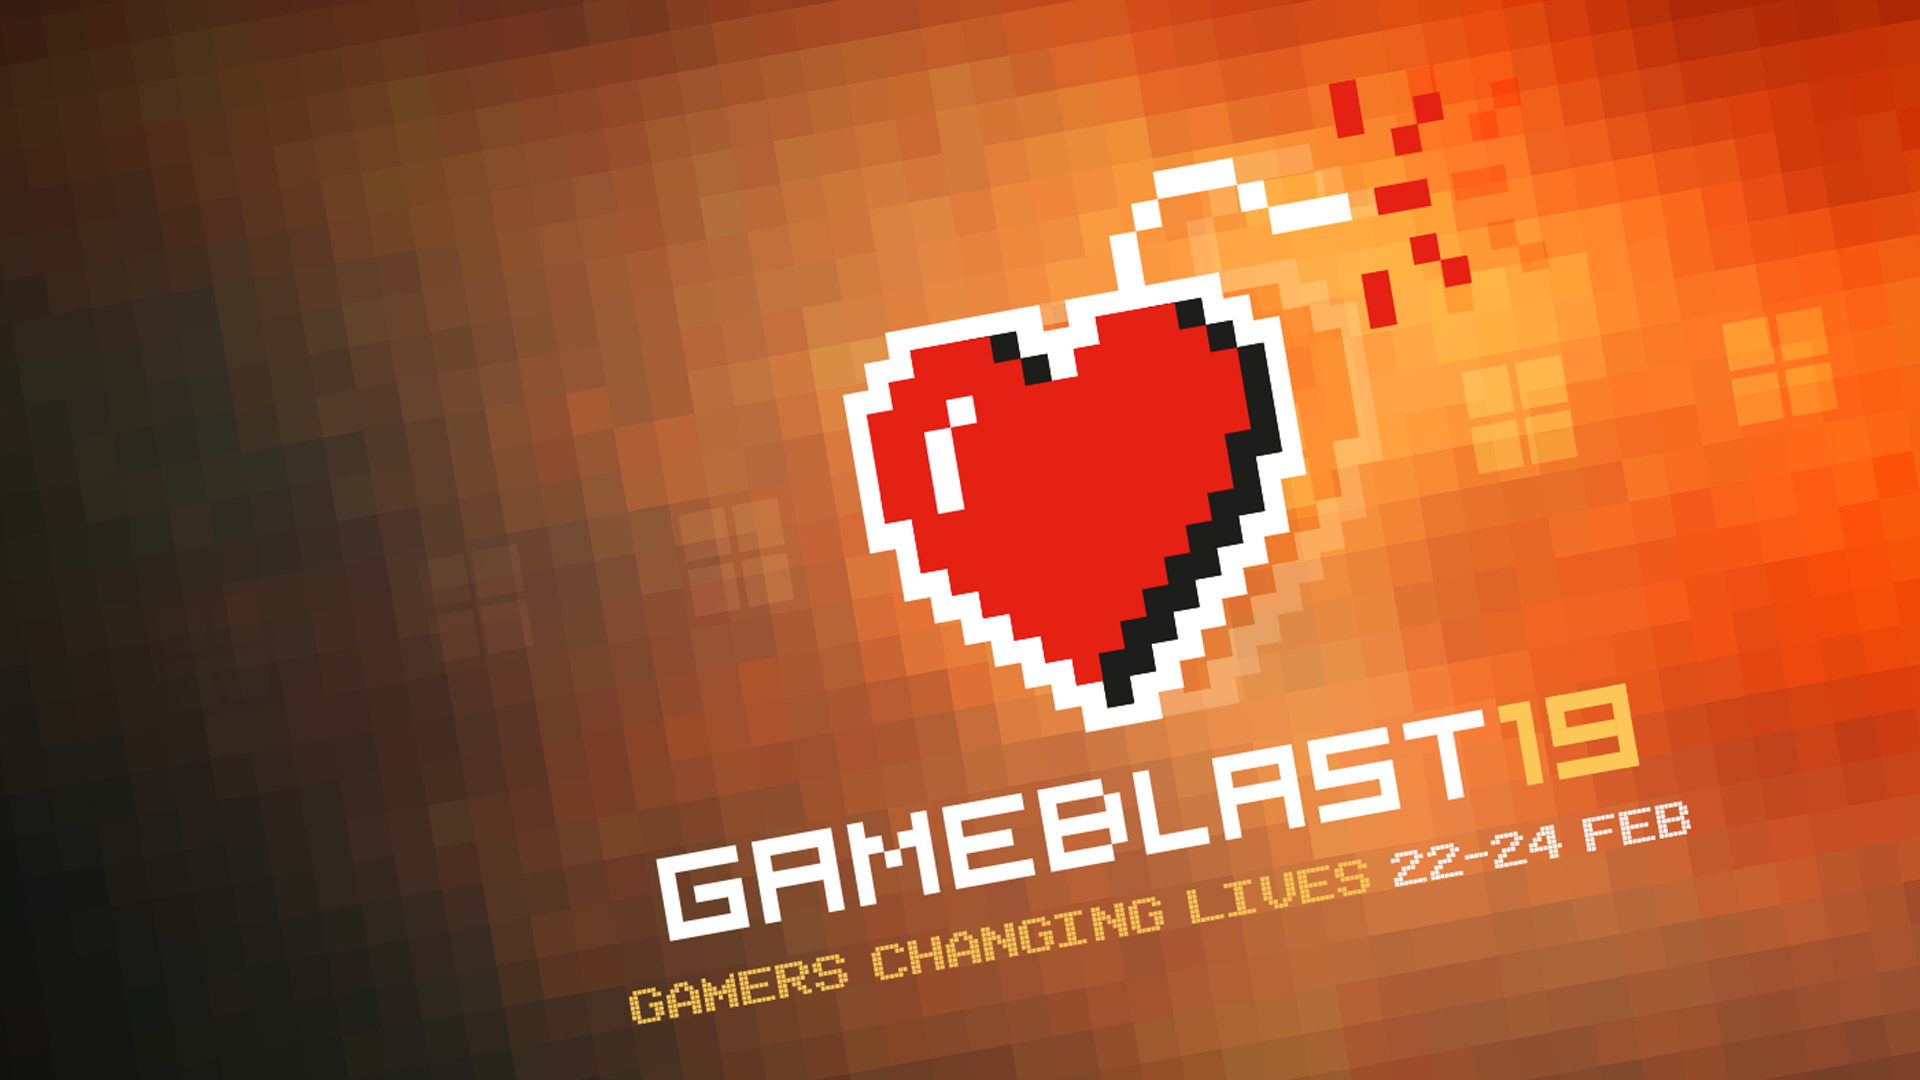 Viperio To Attend Gameblast 2019 Newcastle